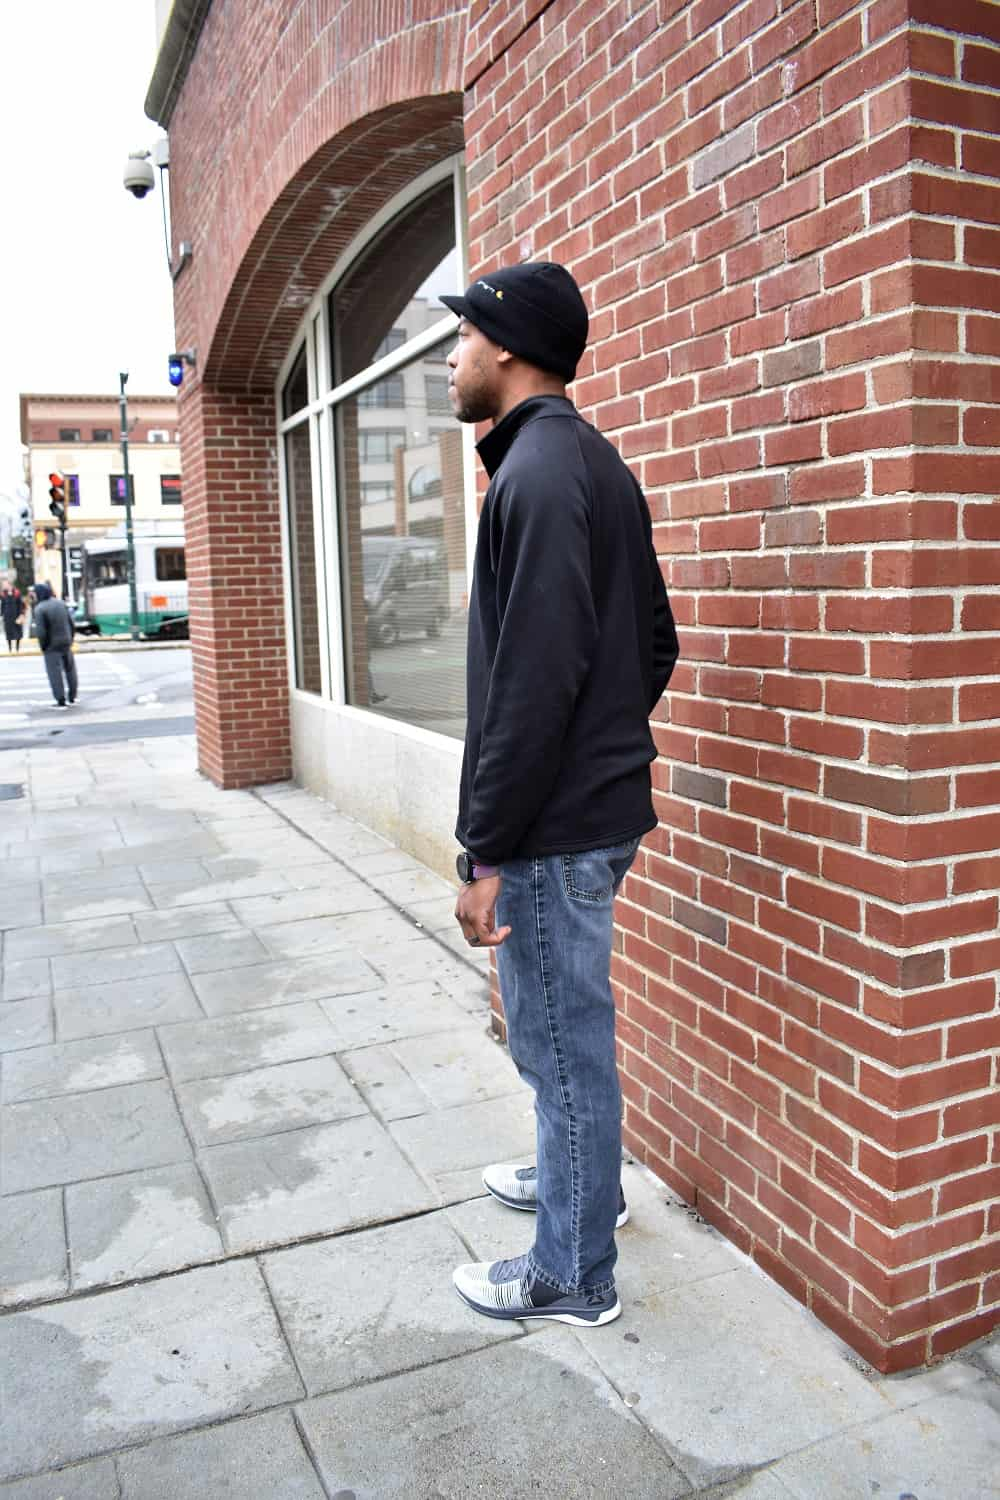 Man wearing black shirt, jeans, and sneakers in the city